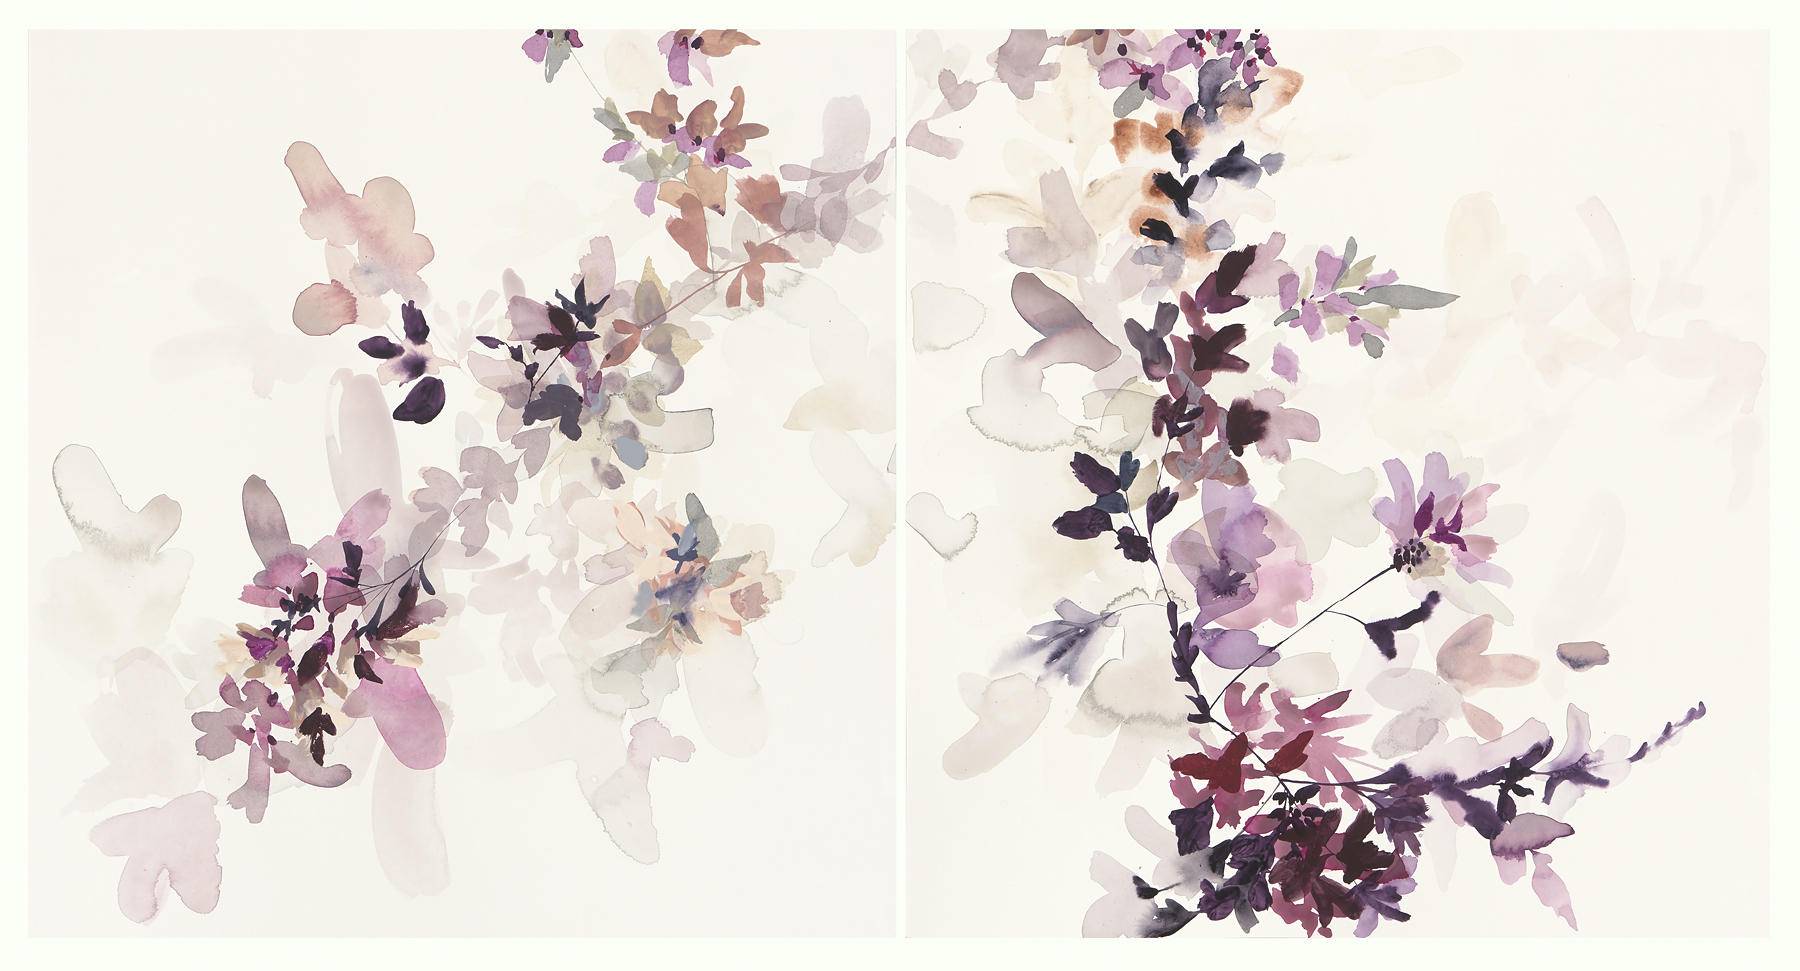 Wildflower Study - lilac and smoke - 1, 2018, mixed media on paper, 23 x 44 (23 x 22 each)""